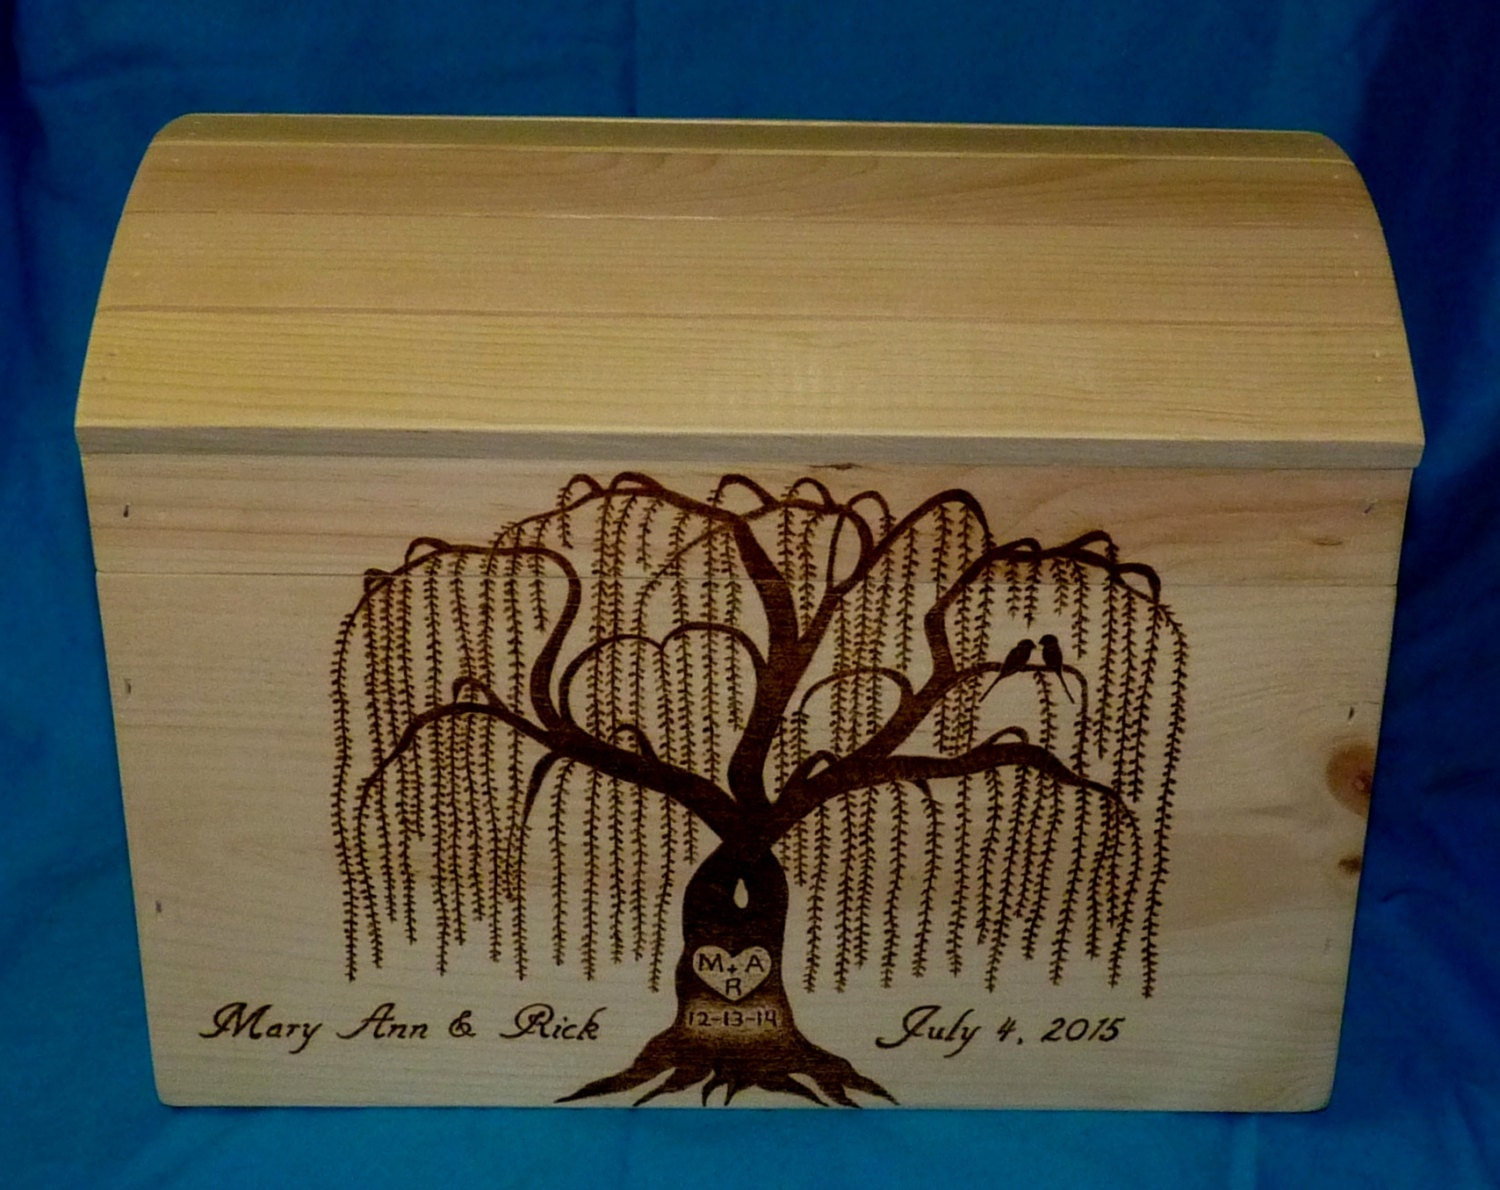 Wedding Guest Box Decorative Wood Burned Wedding Card Box – Large Wedding Card Box